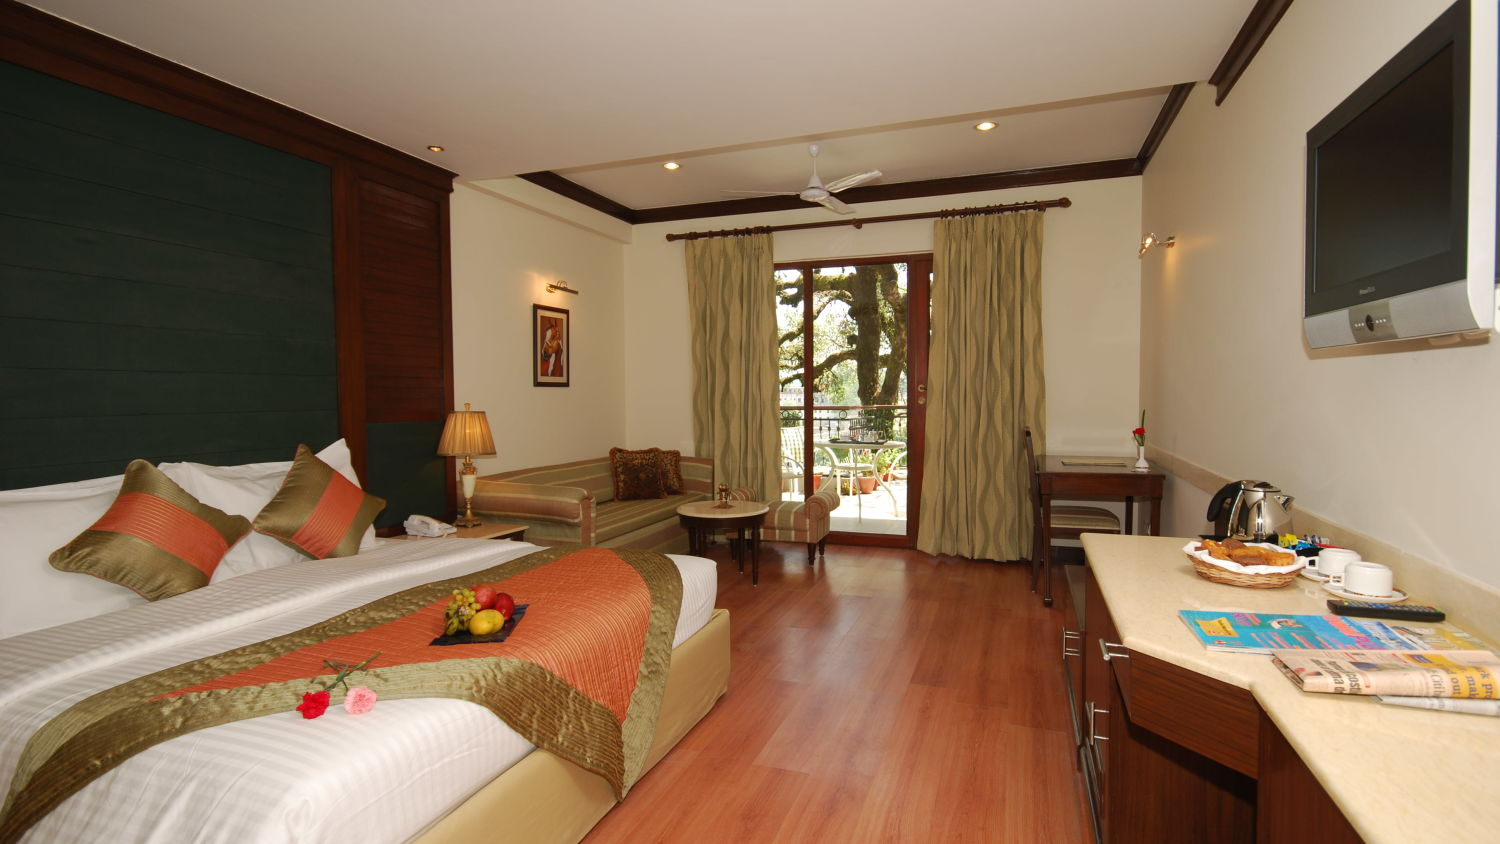 Spacious rooms in Mussoorie, Hotel rooms in Mussoorie, Hotel Madhuban Sarovar Portico, Mussoorie